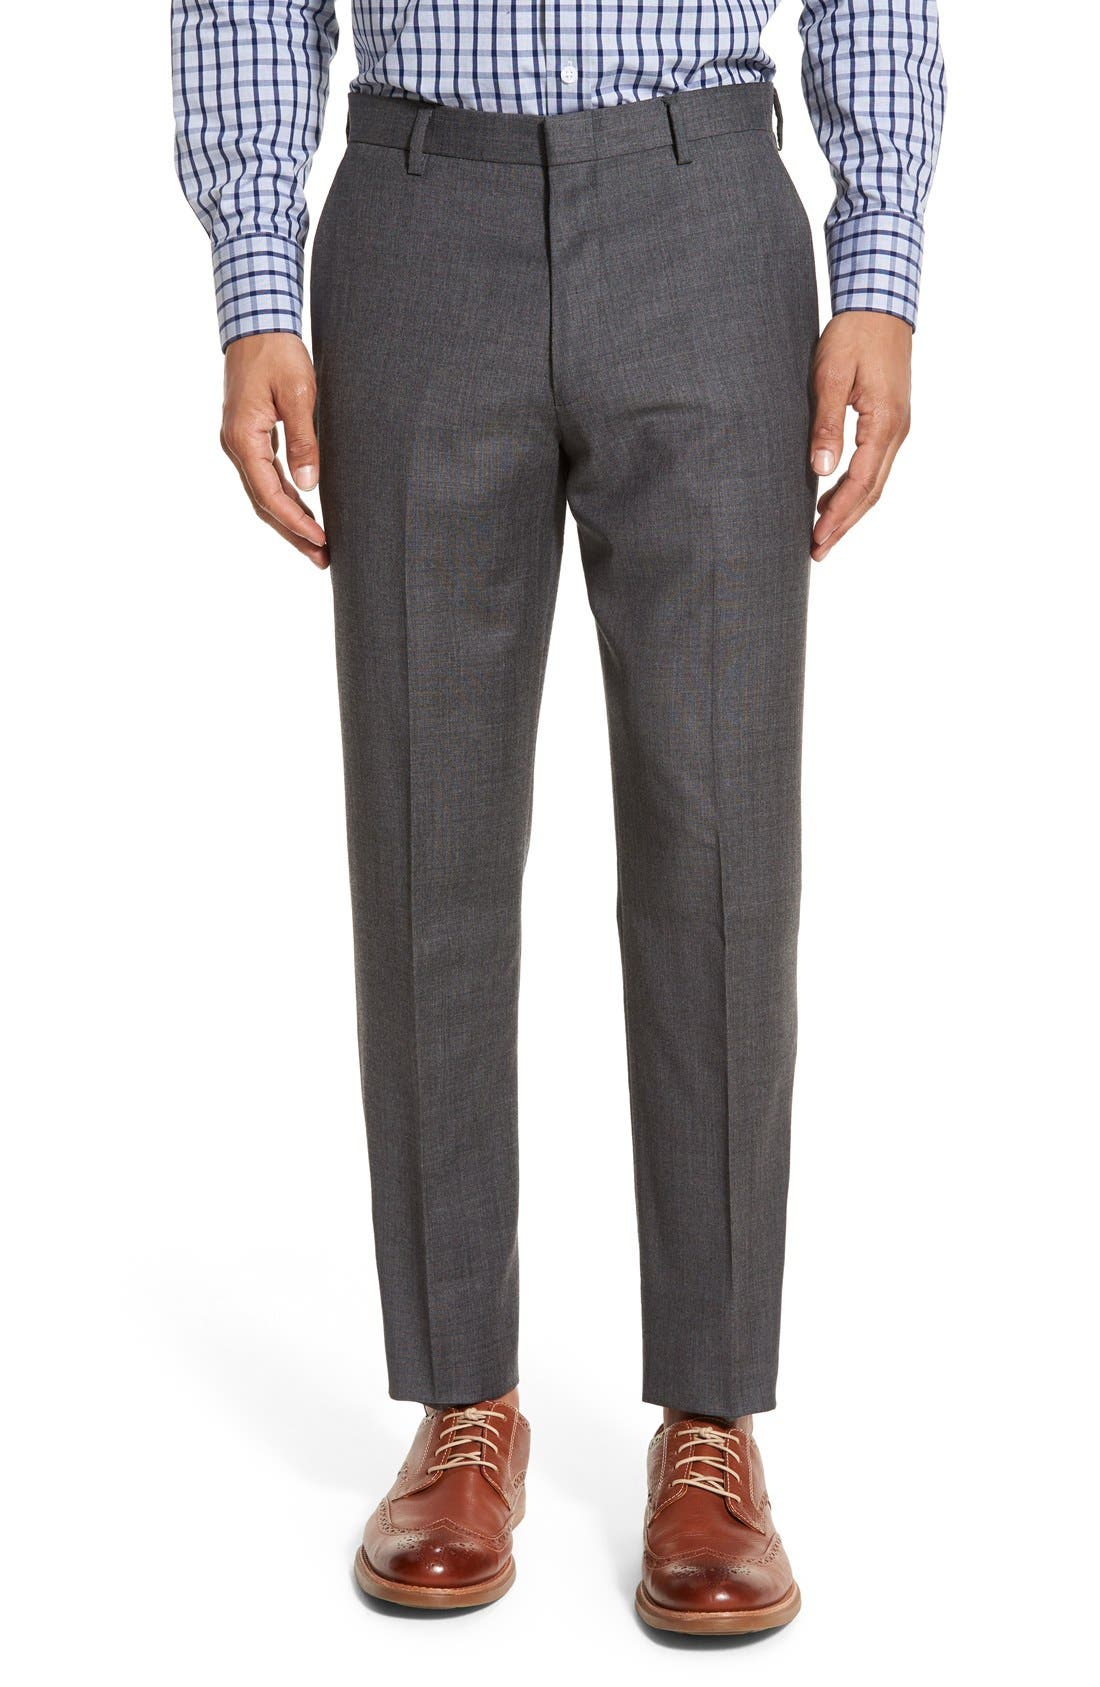 Ludlow Flat Front Solid Wool Trousers,                             Main thumbnail 1, color,